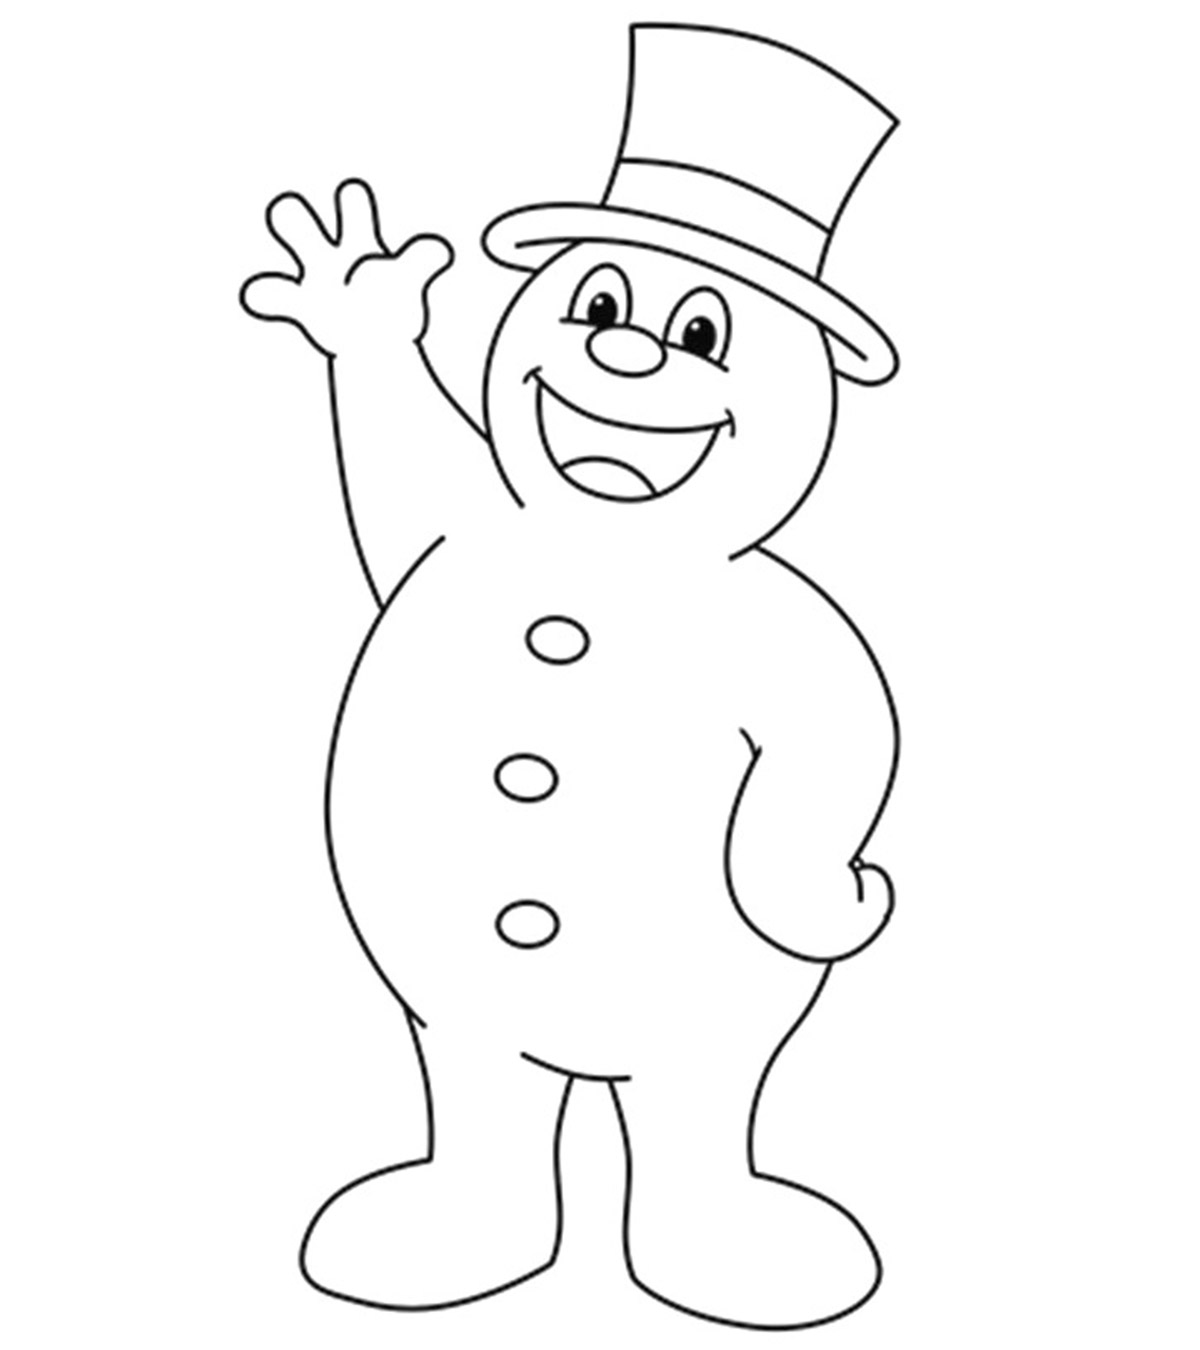 photo about Frosty the Snowman Sheet Music Free Printable called 10 Lovely Frosty The Snowman Coloring Web pages For Infants